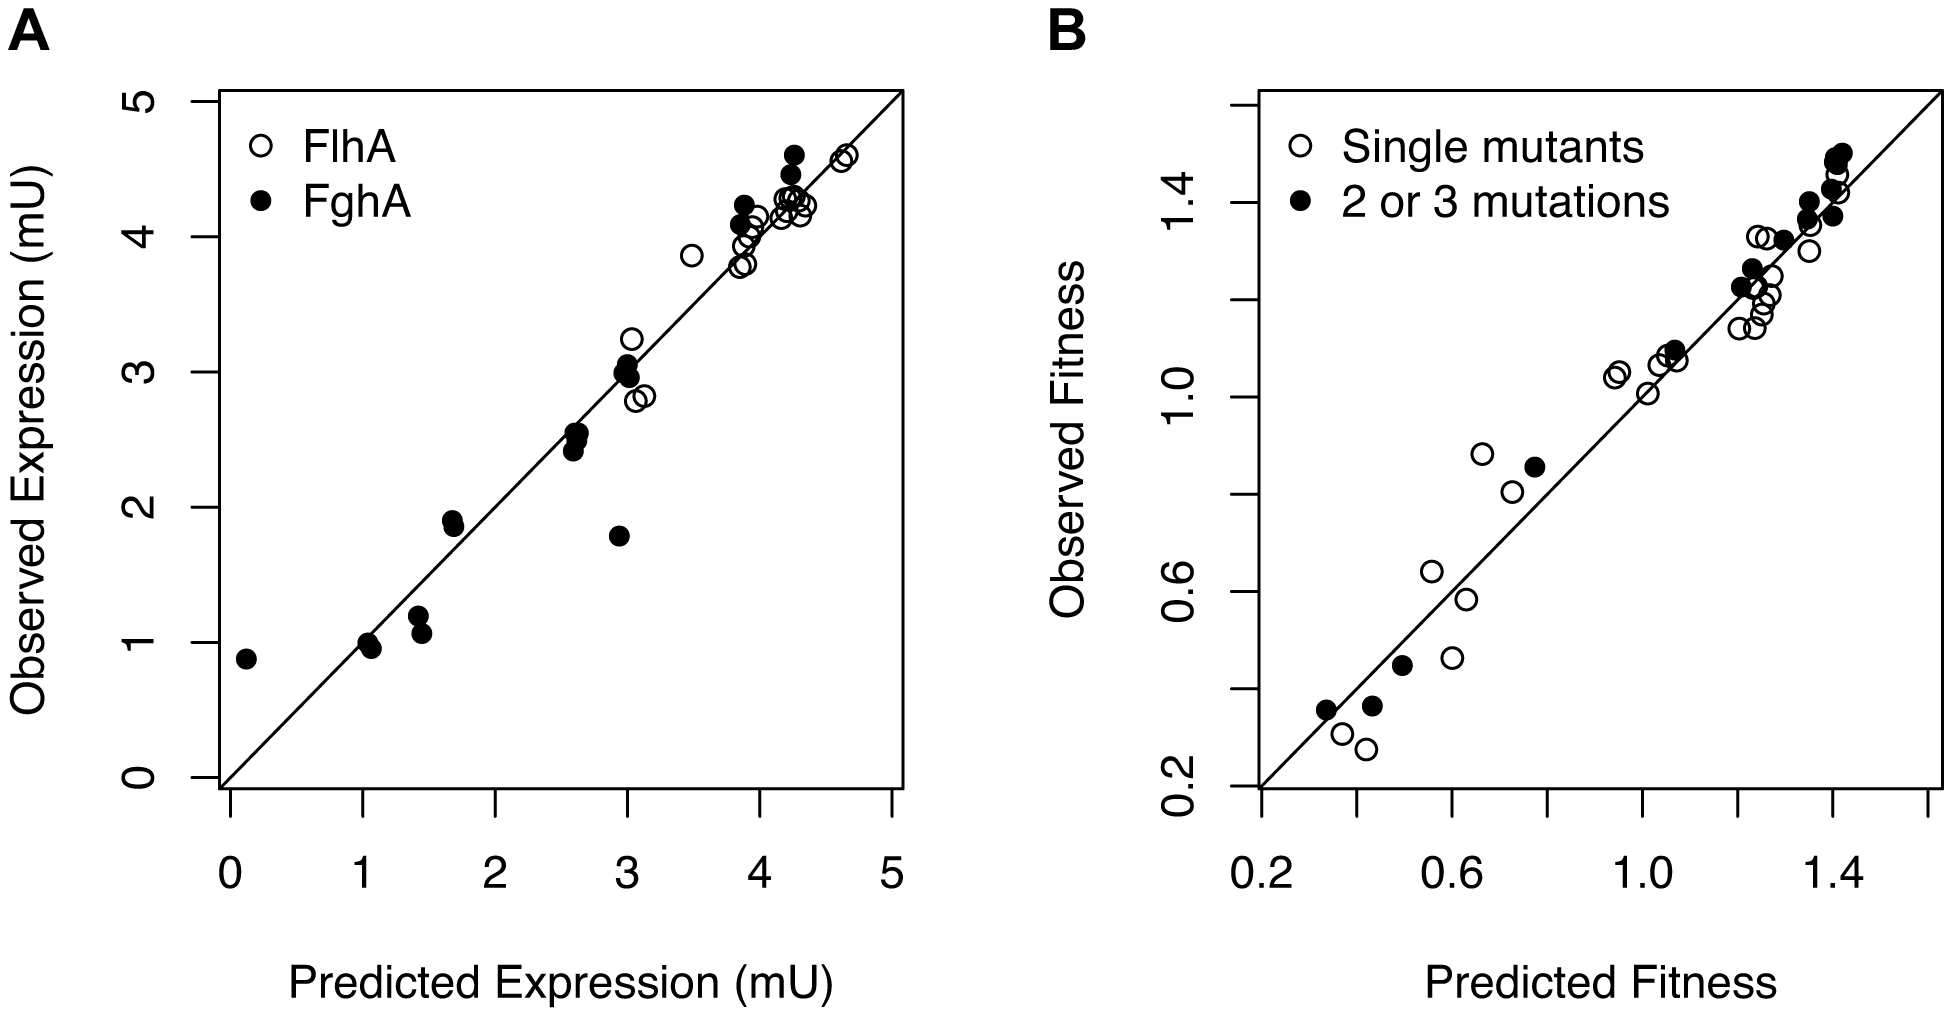 Mutations exert independent effects upon enzyme expression but a mechanistic model of benefits and costs of enzymes is required to predict combined effects on fitness.